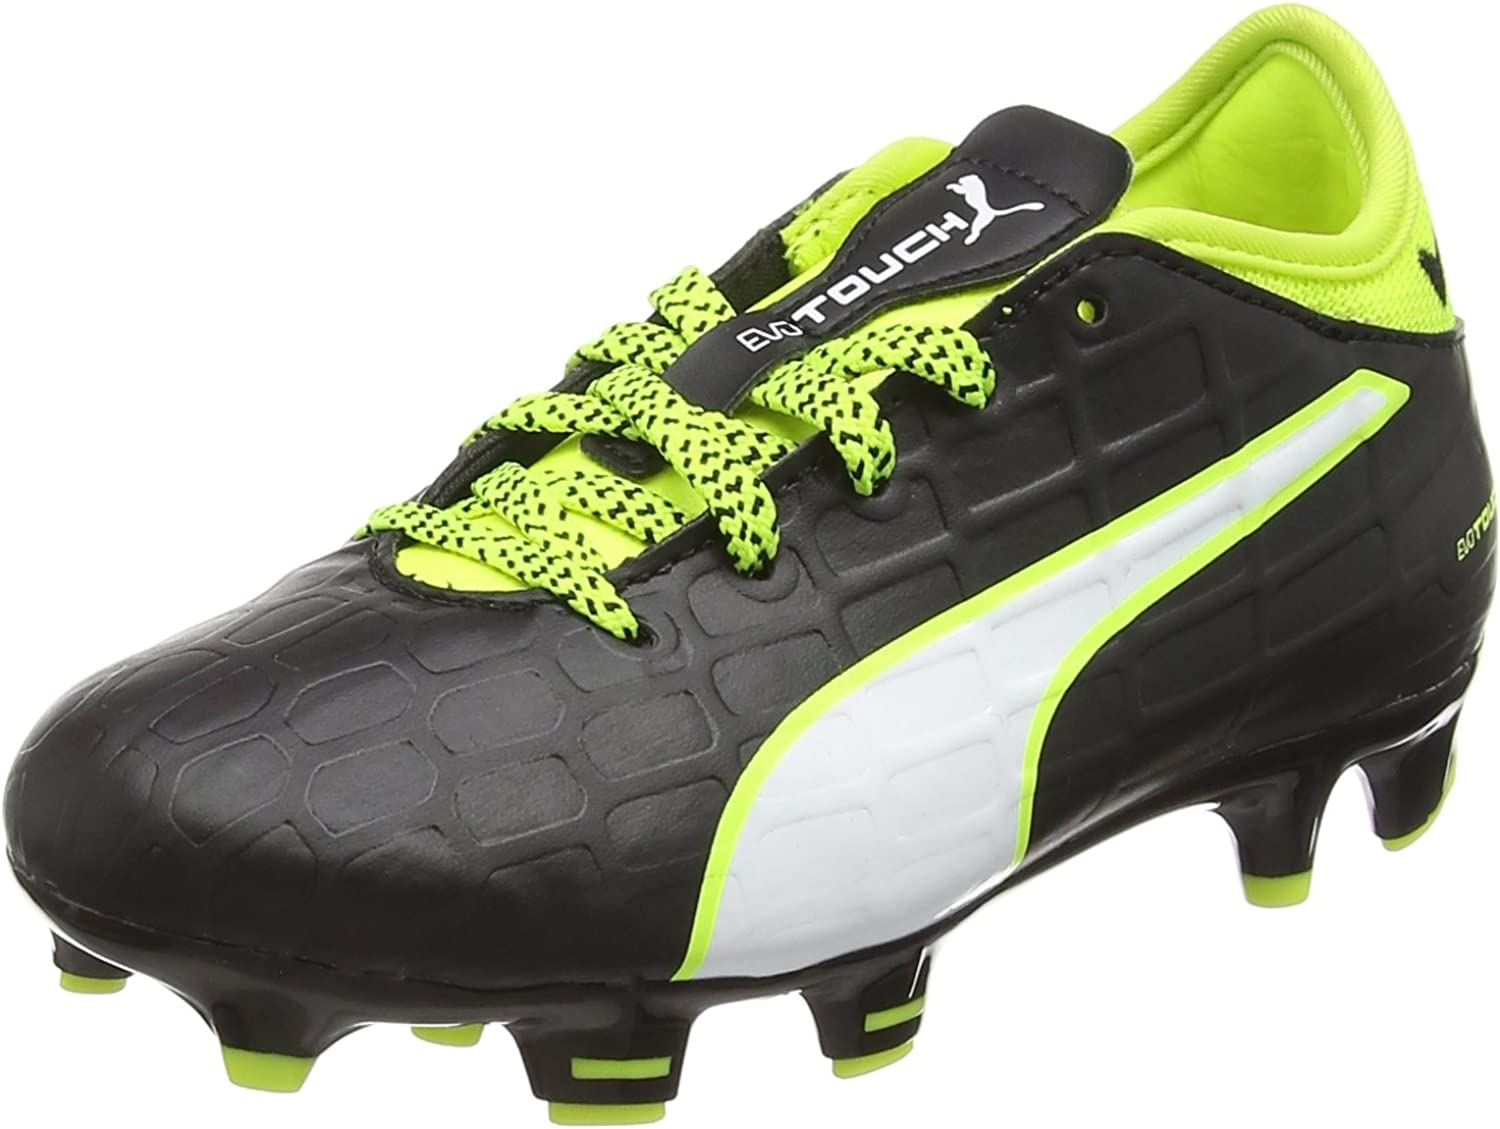 PUMA Evotouch 3 FG Football Soccer Boots shoes Black neon White